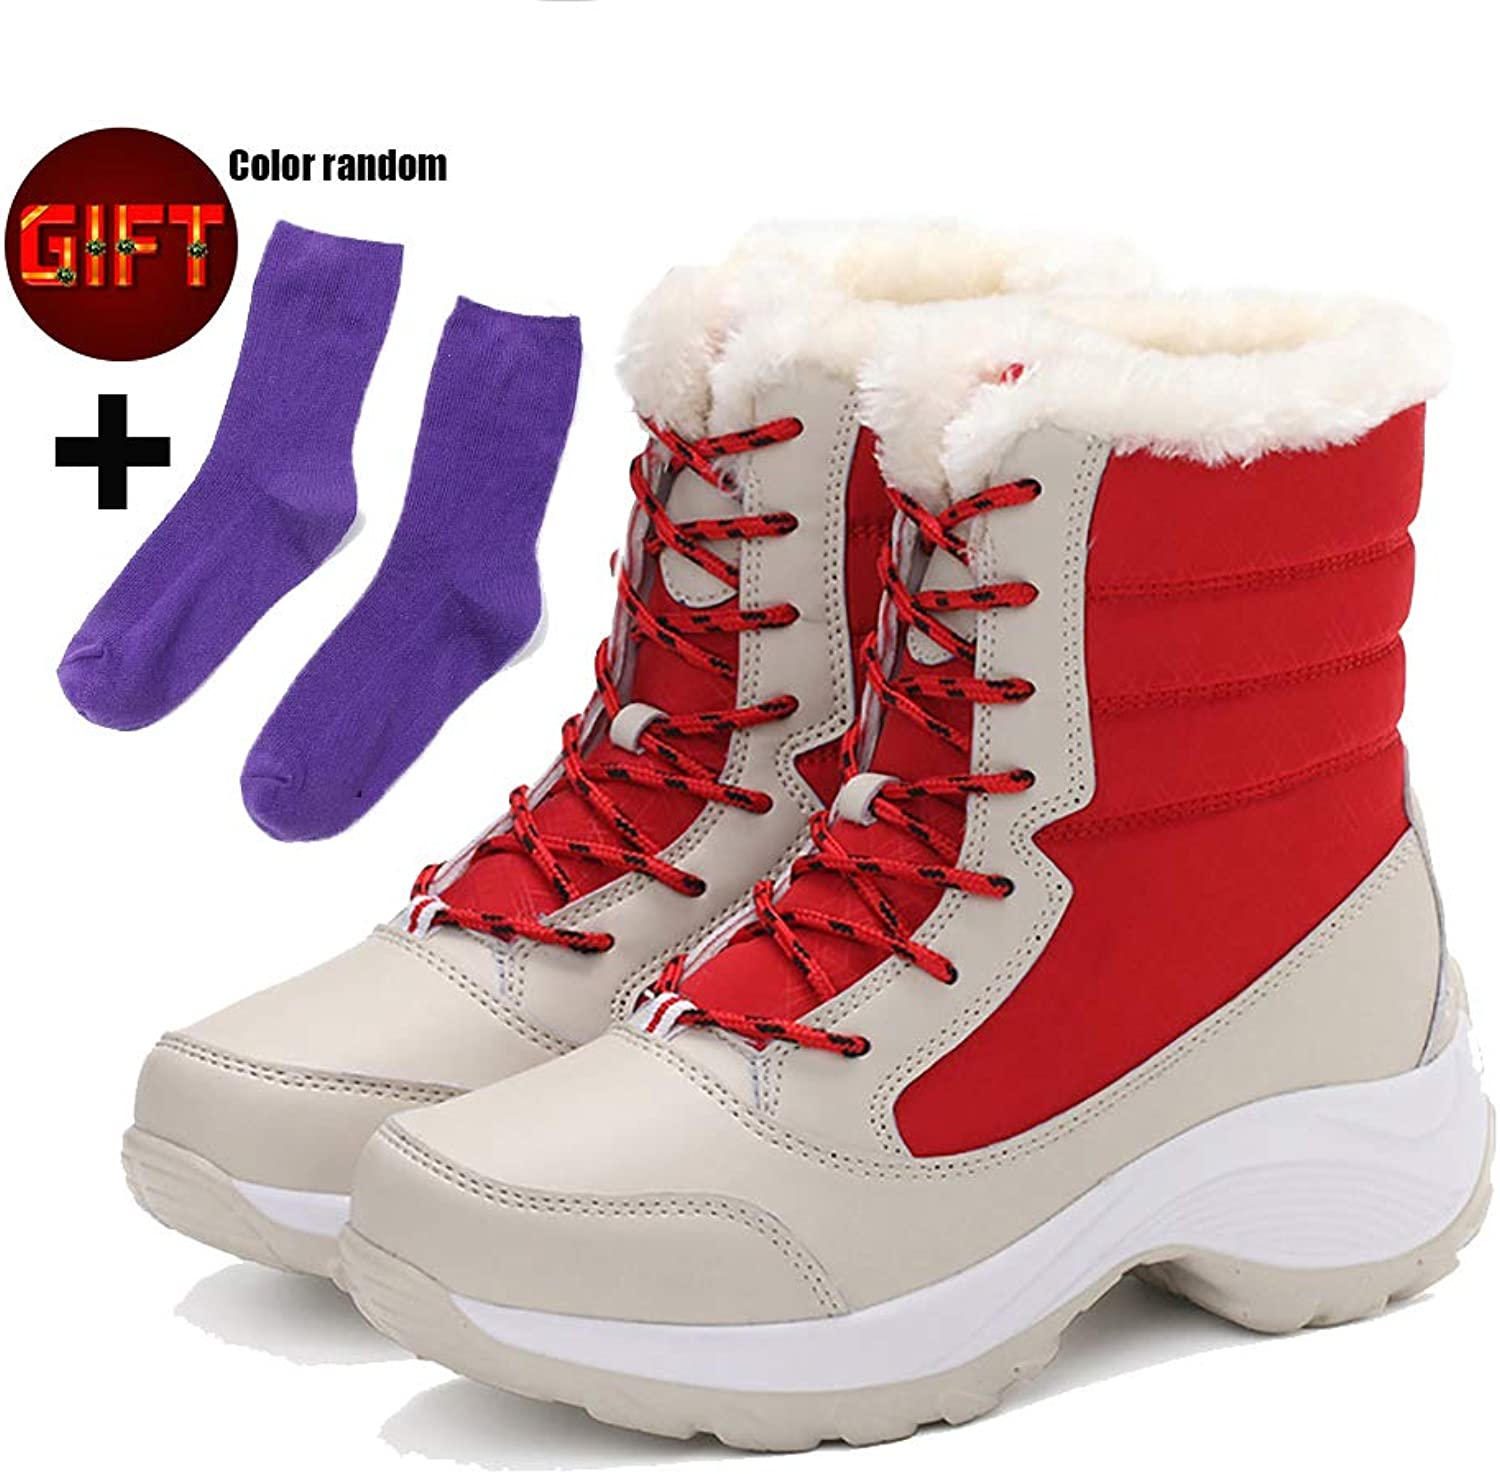 KISSOURBABY Women's Fur Lining Winter Boots Outdoor Waterproof Snow Boots